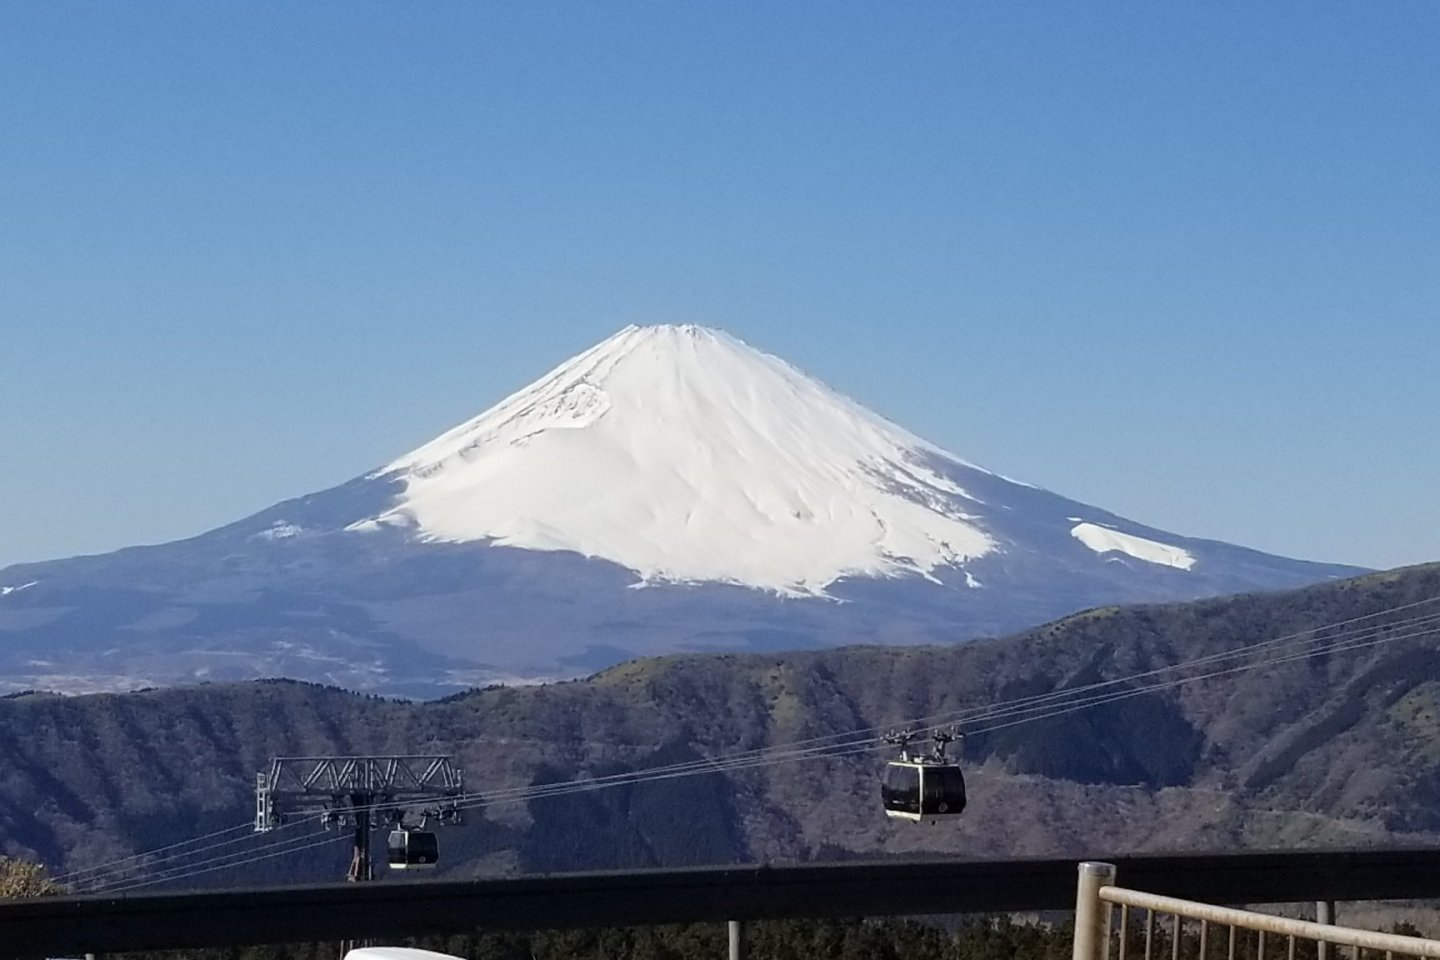 You can see Mt. Fuji when you get off at Owakudani